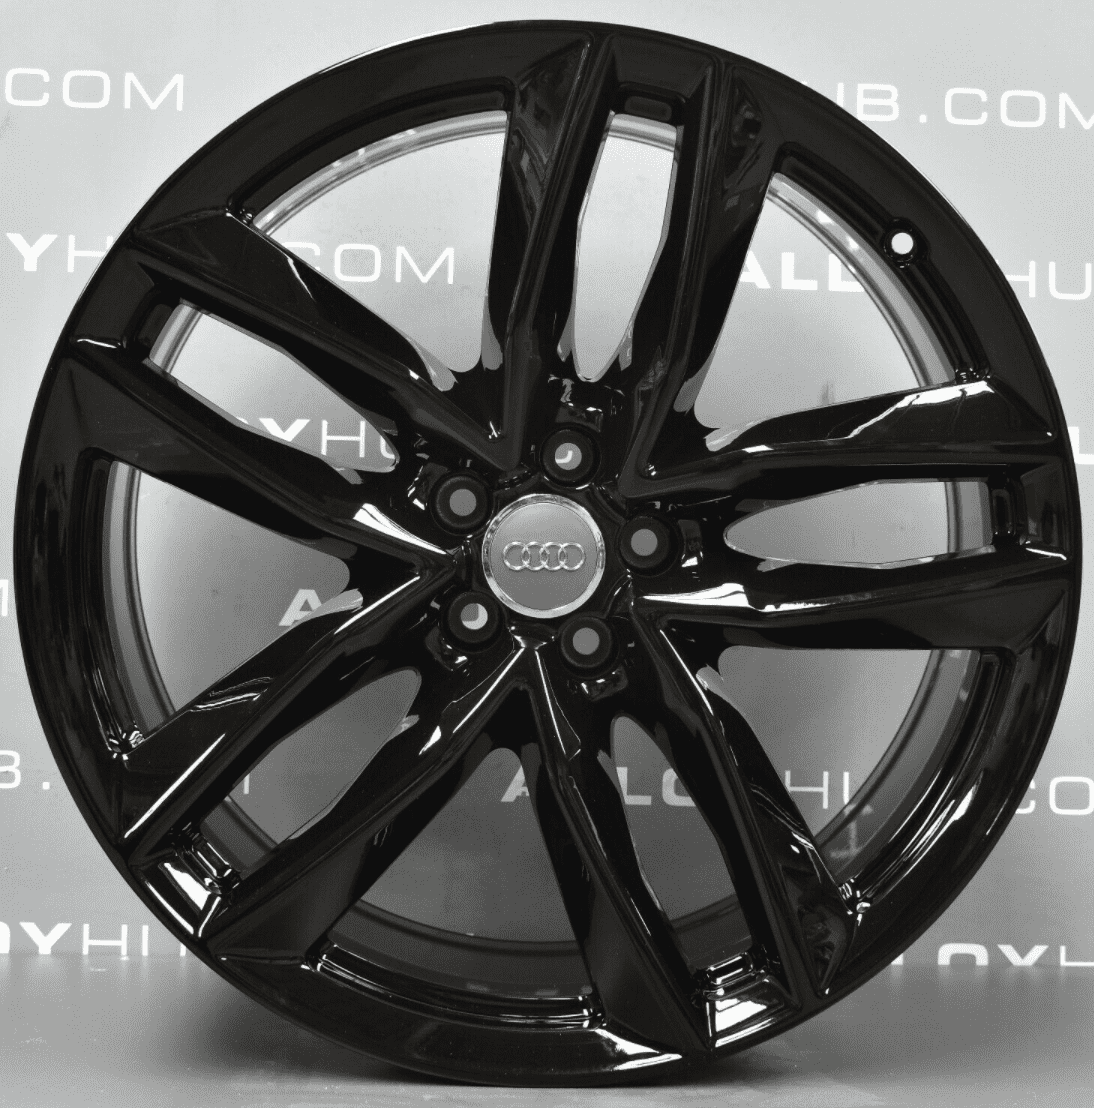 Genuine Audi Q7 4M RS 21″ inch 5 Twin Spoke Alloy Wheels with Gloss Black Finish 4M0 601 025 S